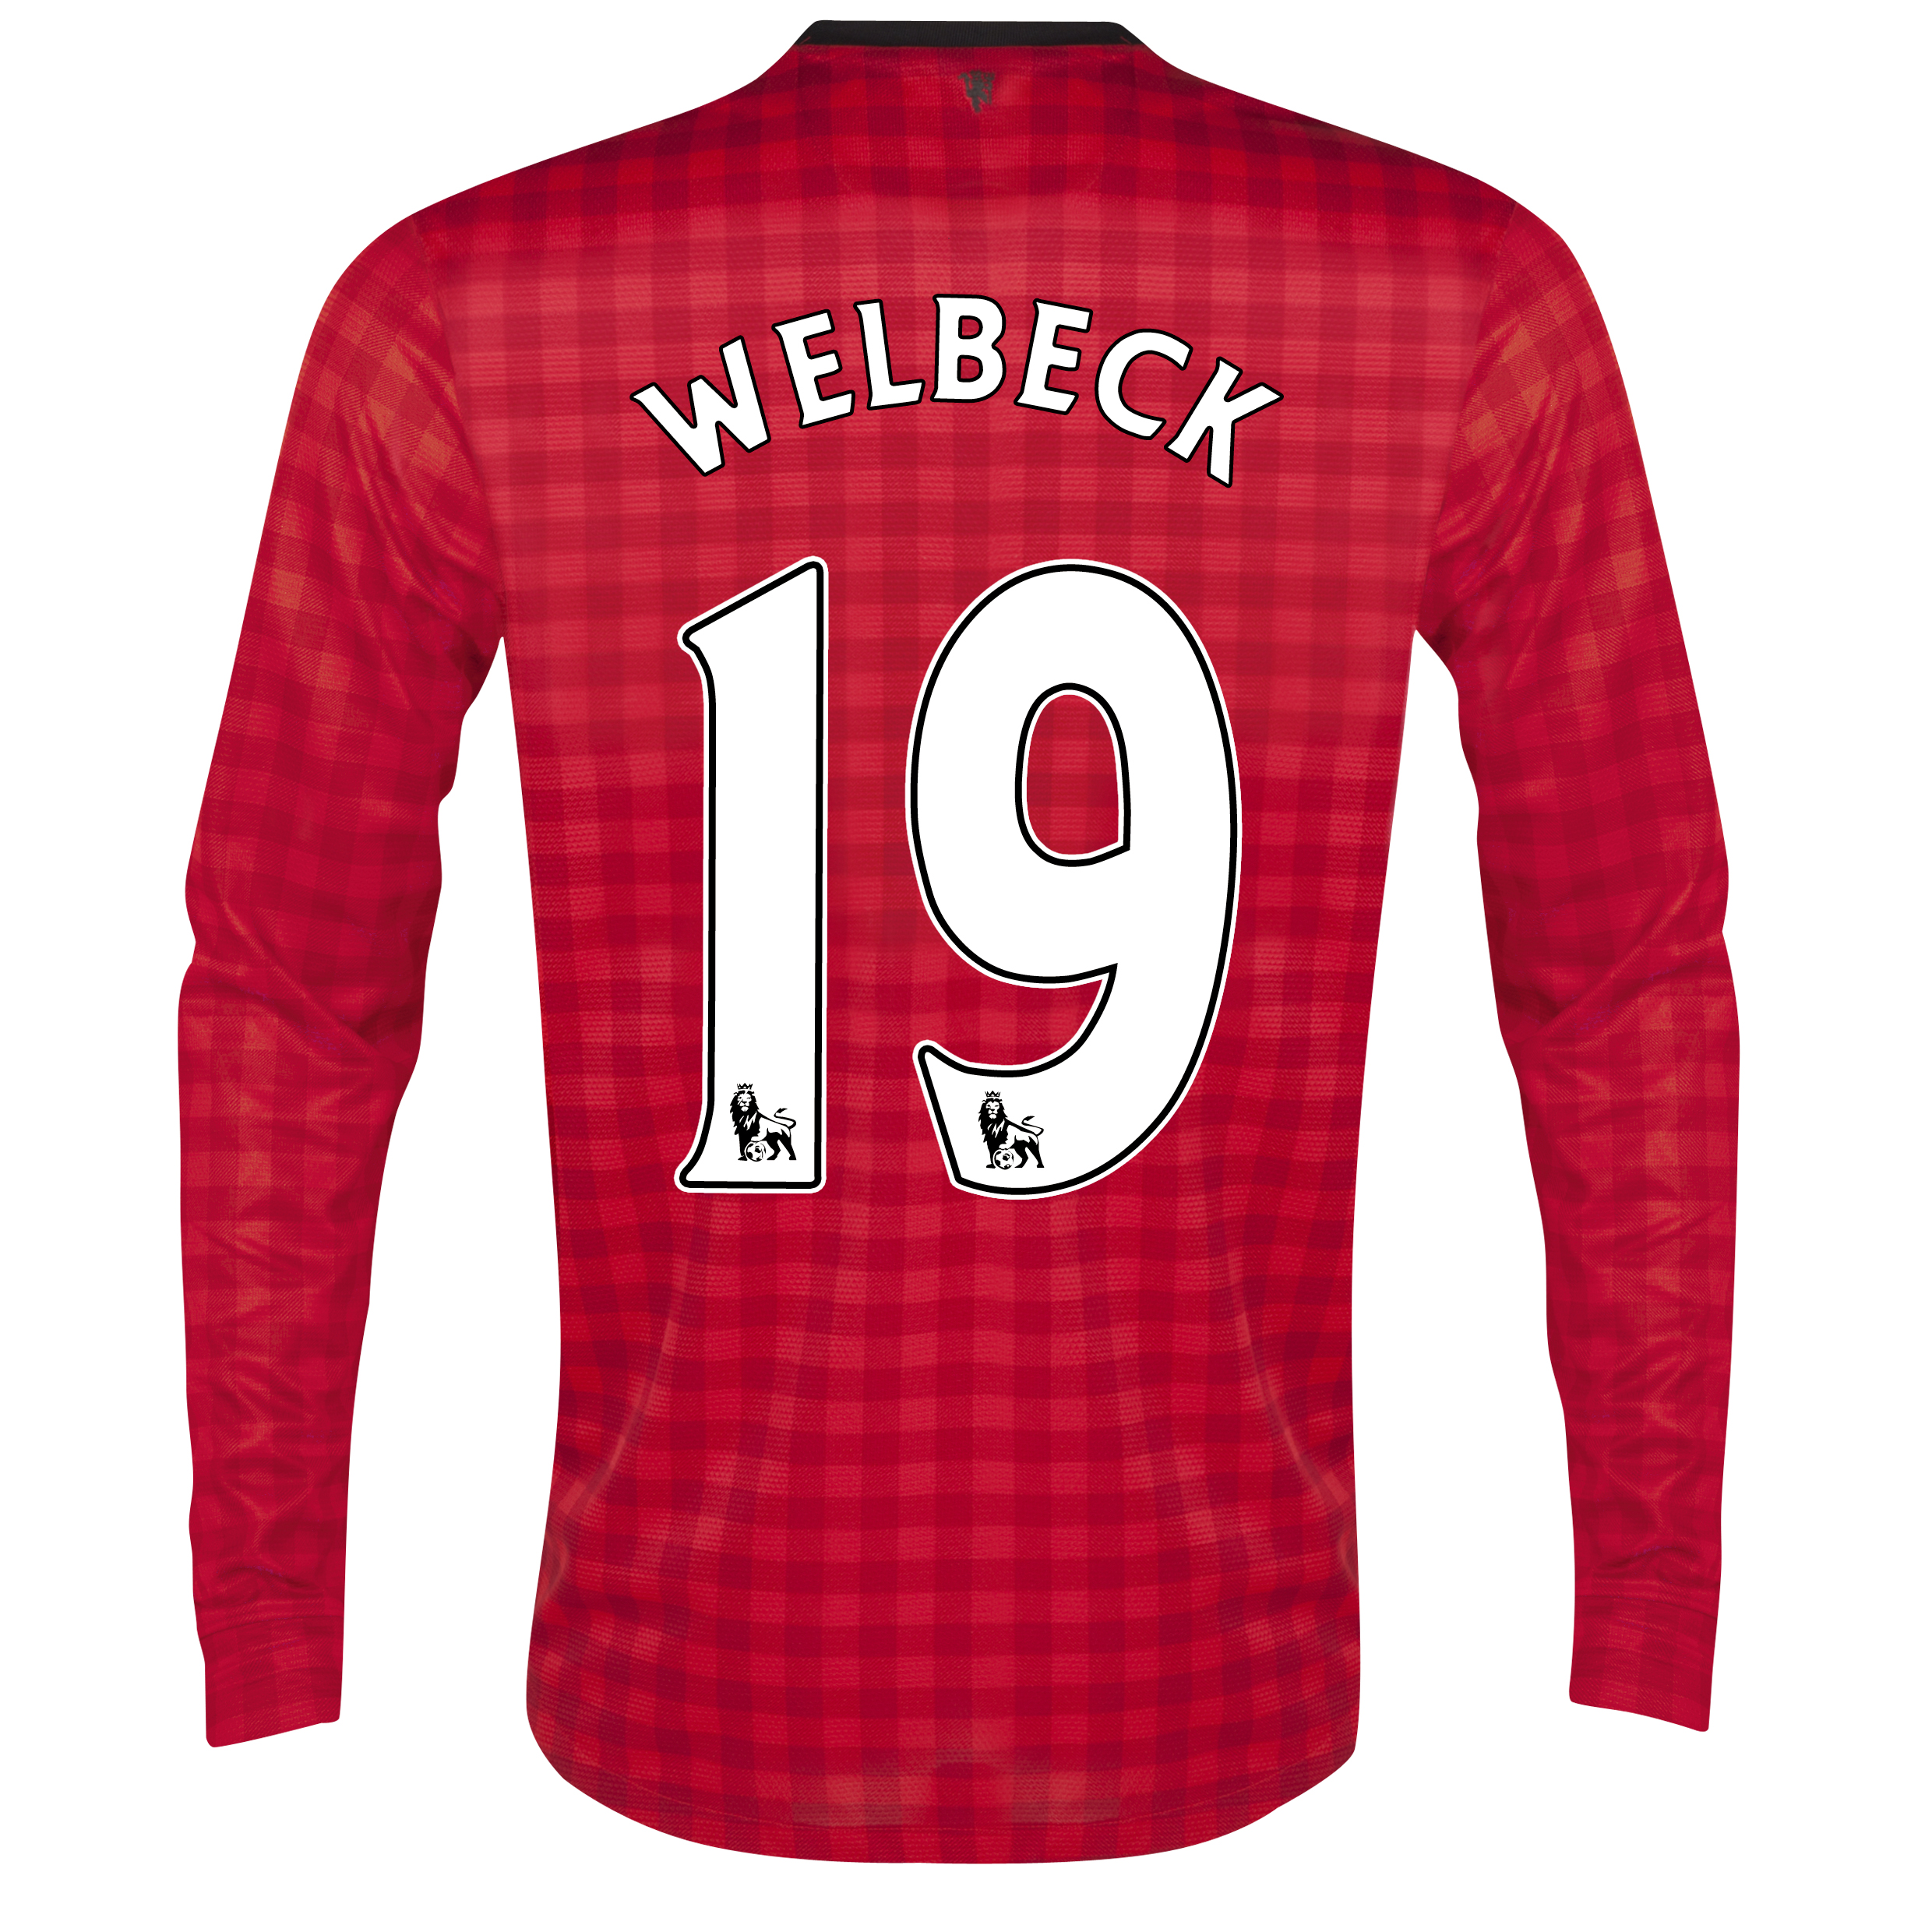 Manchester United Home Shirt 2012/13 - Long Sleeved  - Kids with Welbeck 19 printing